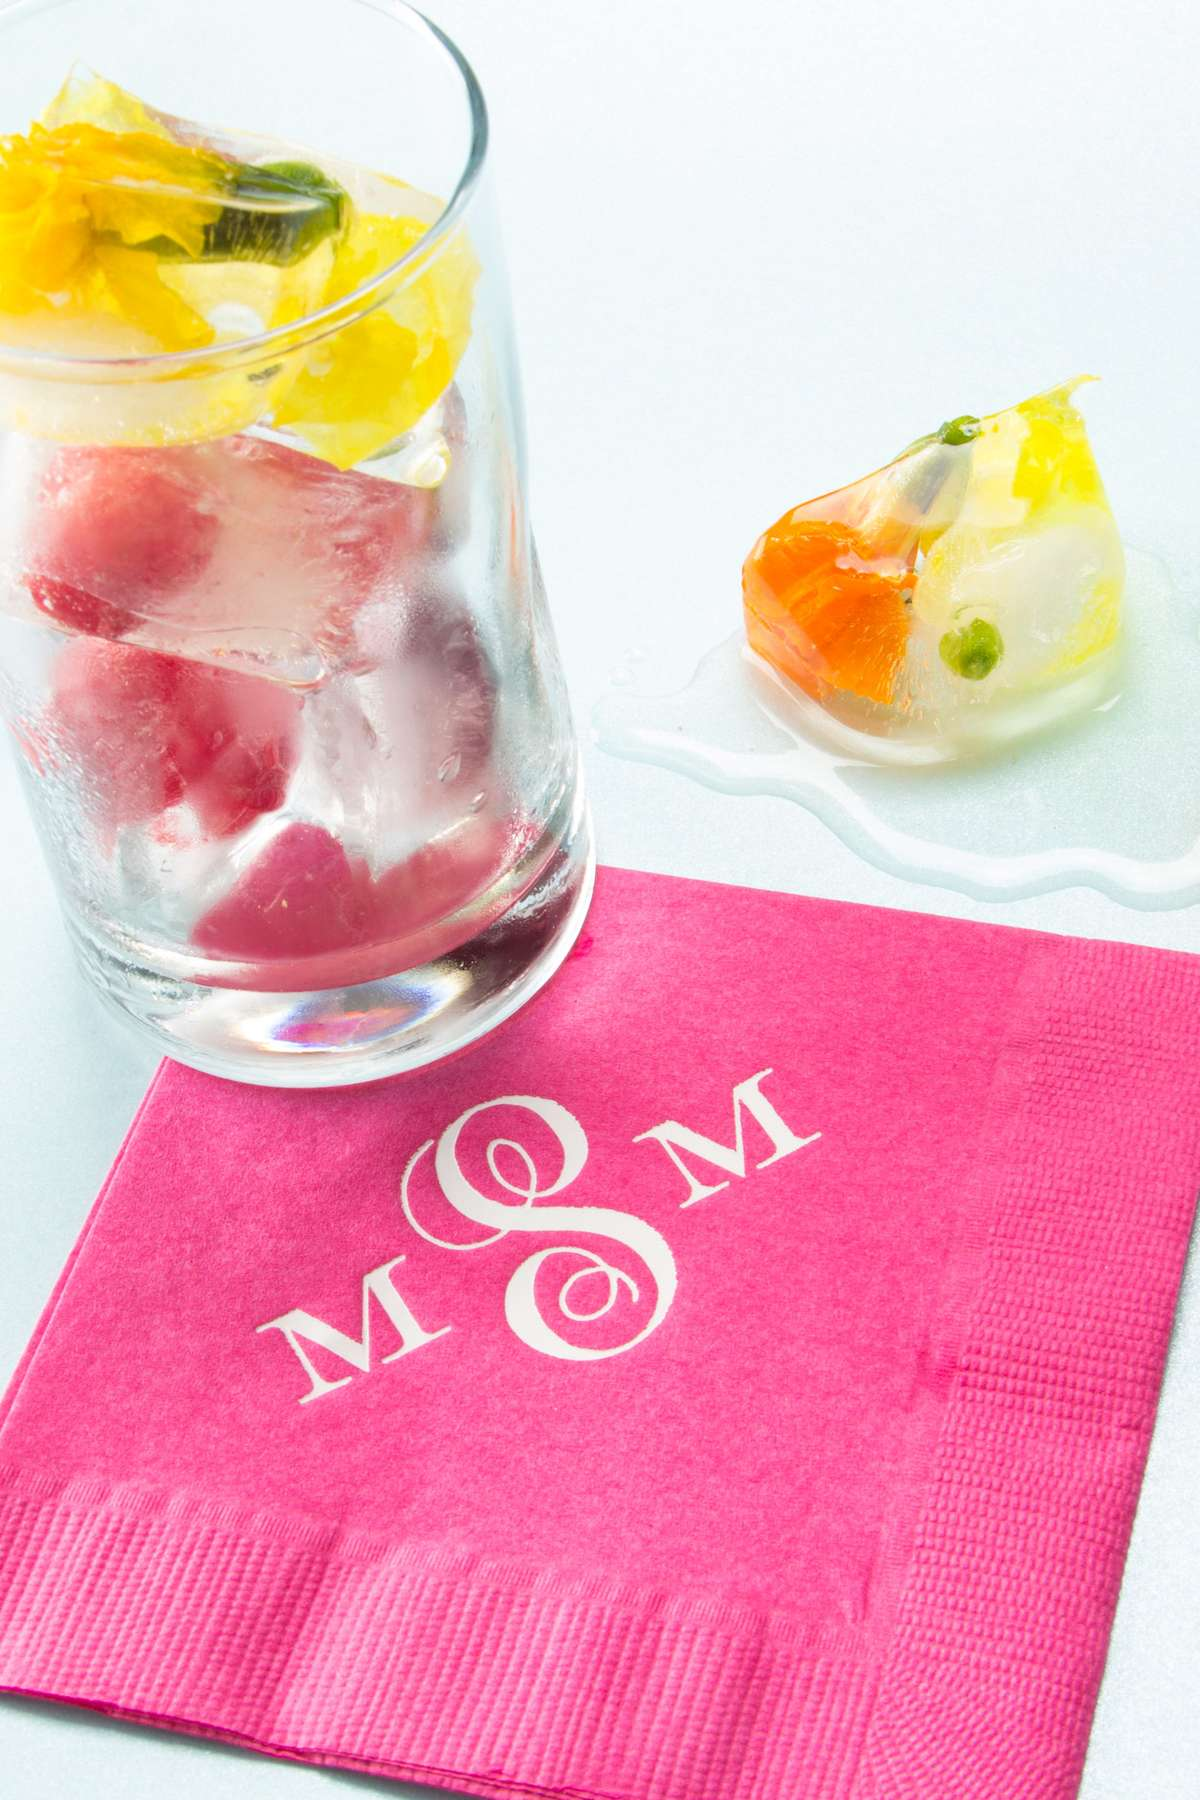 Fruit in ice for cocktails with Personalized Cocktail Napkin